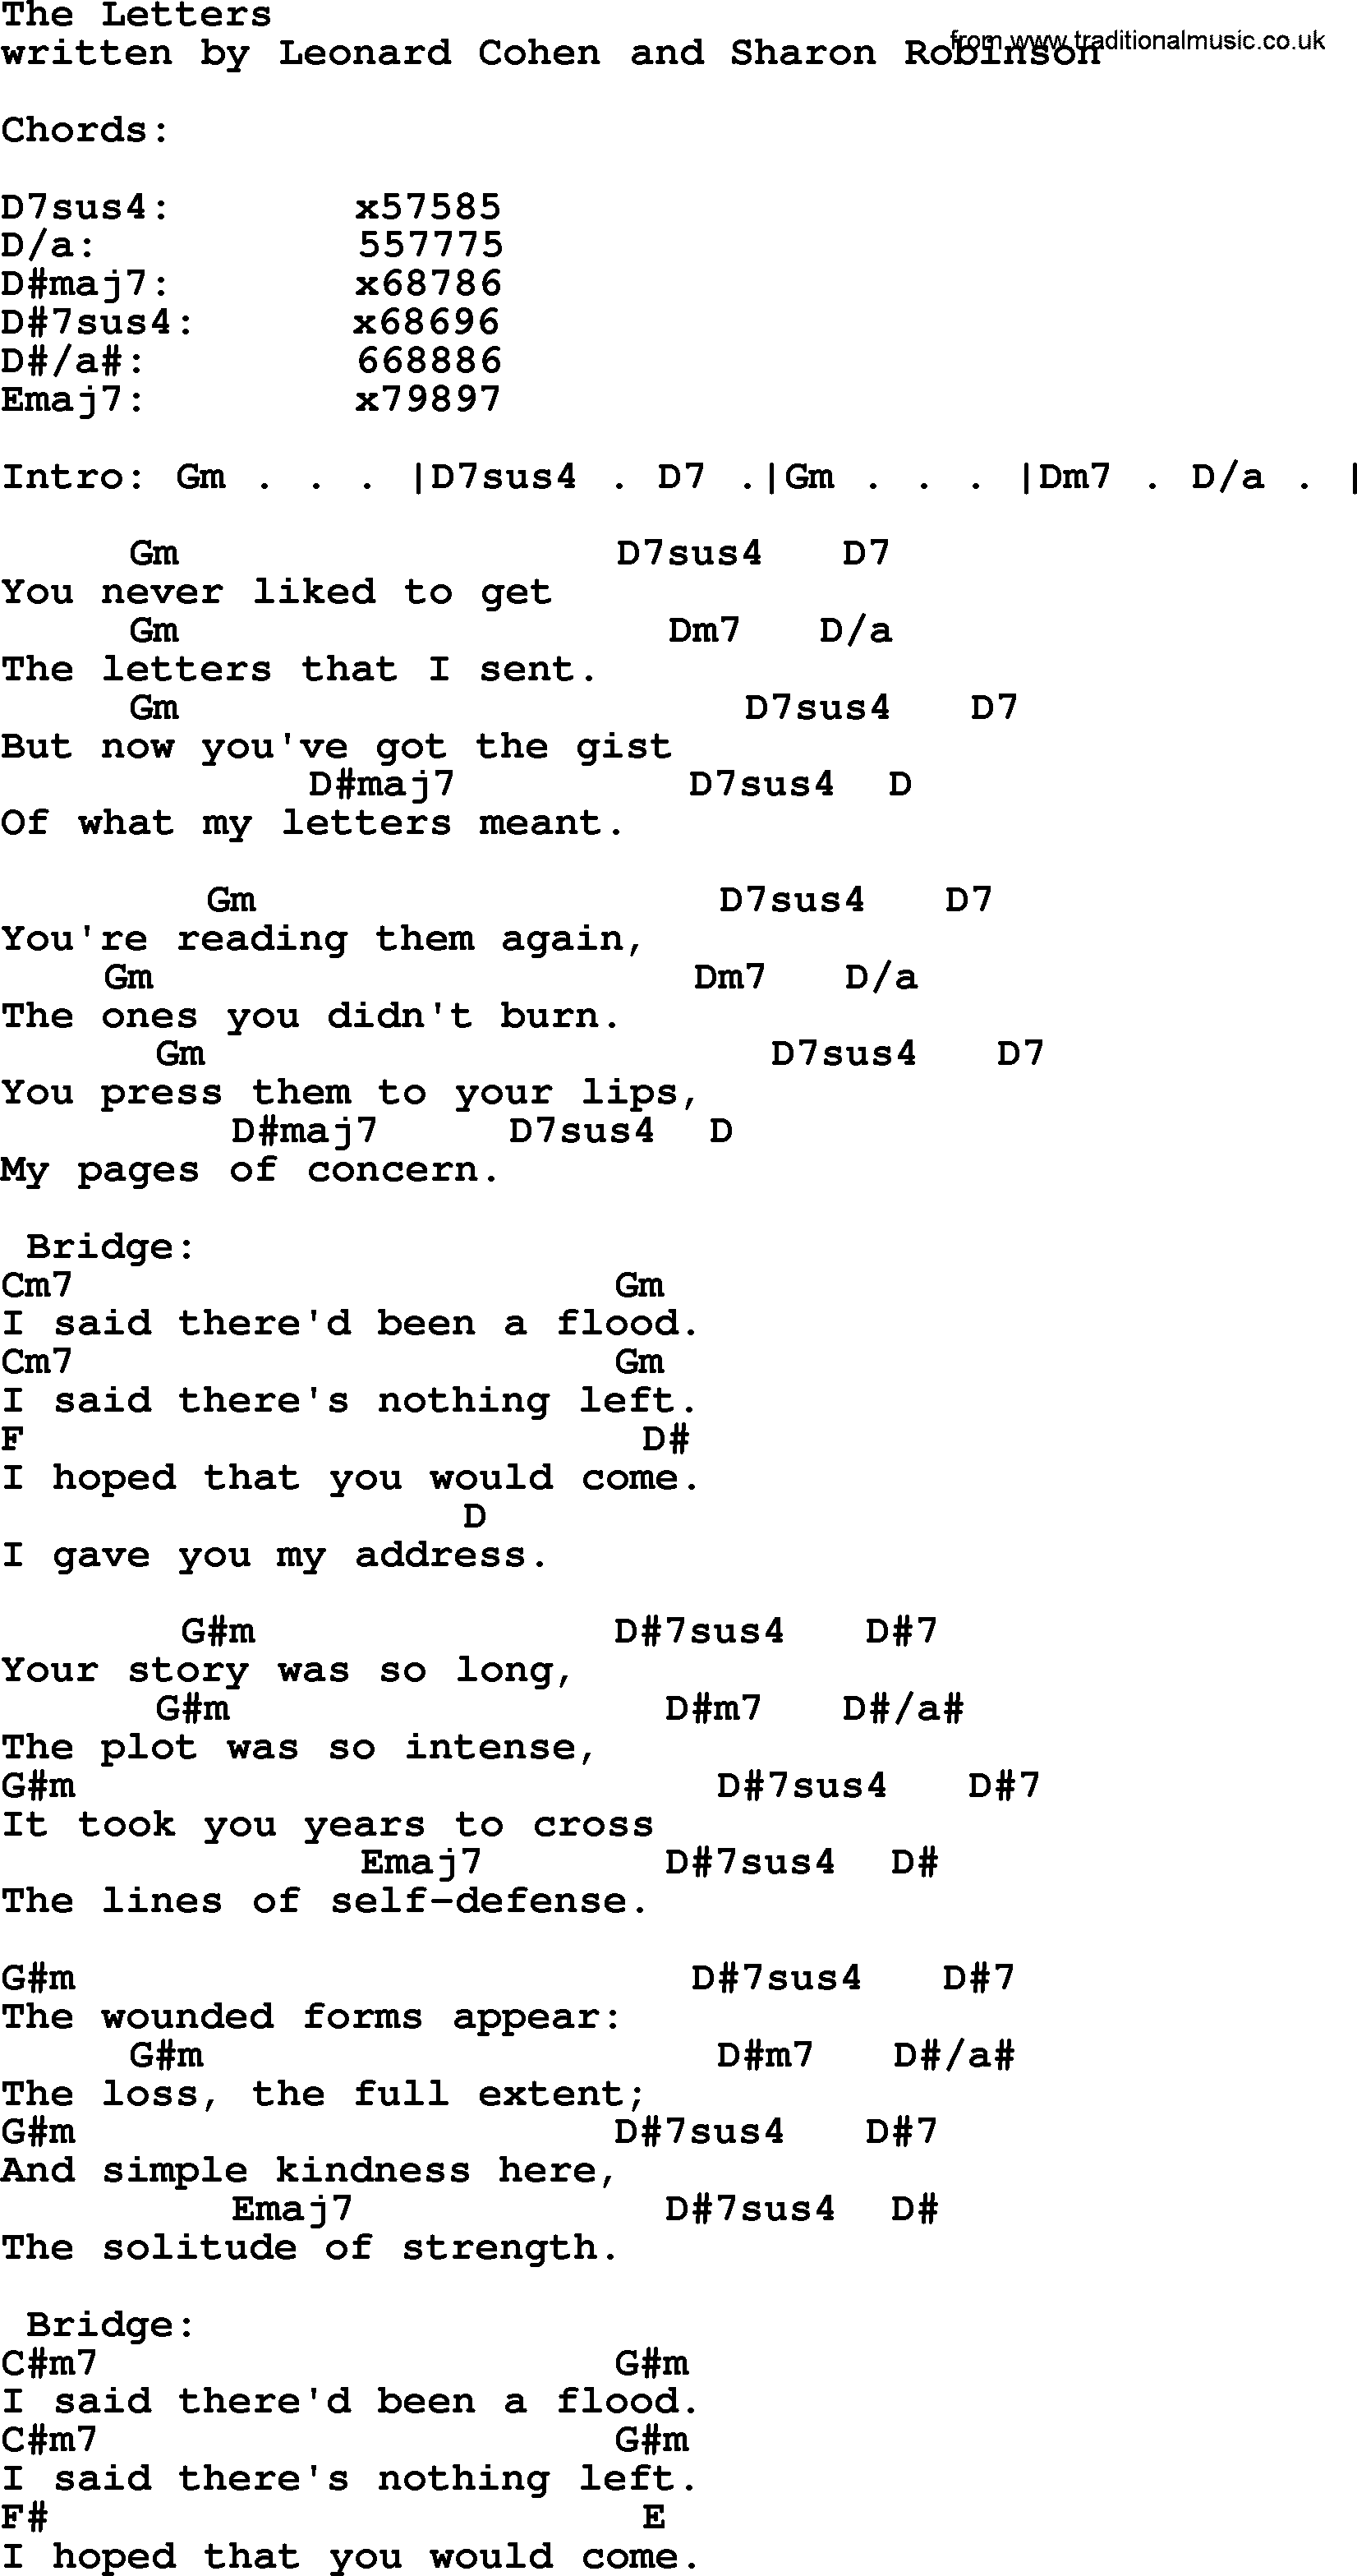 Leonard Cohen song: The Letters, lyrics and chords